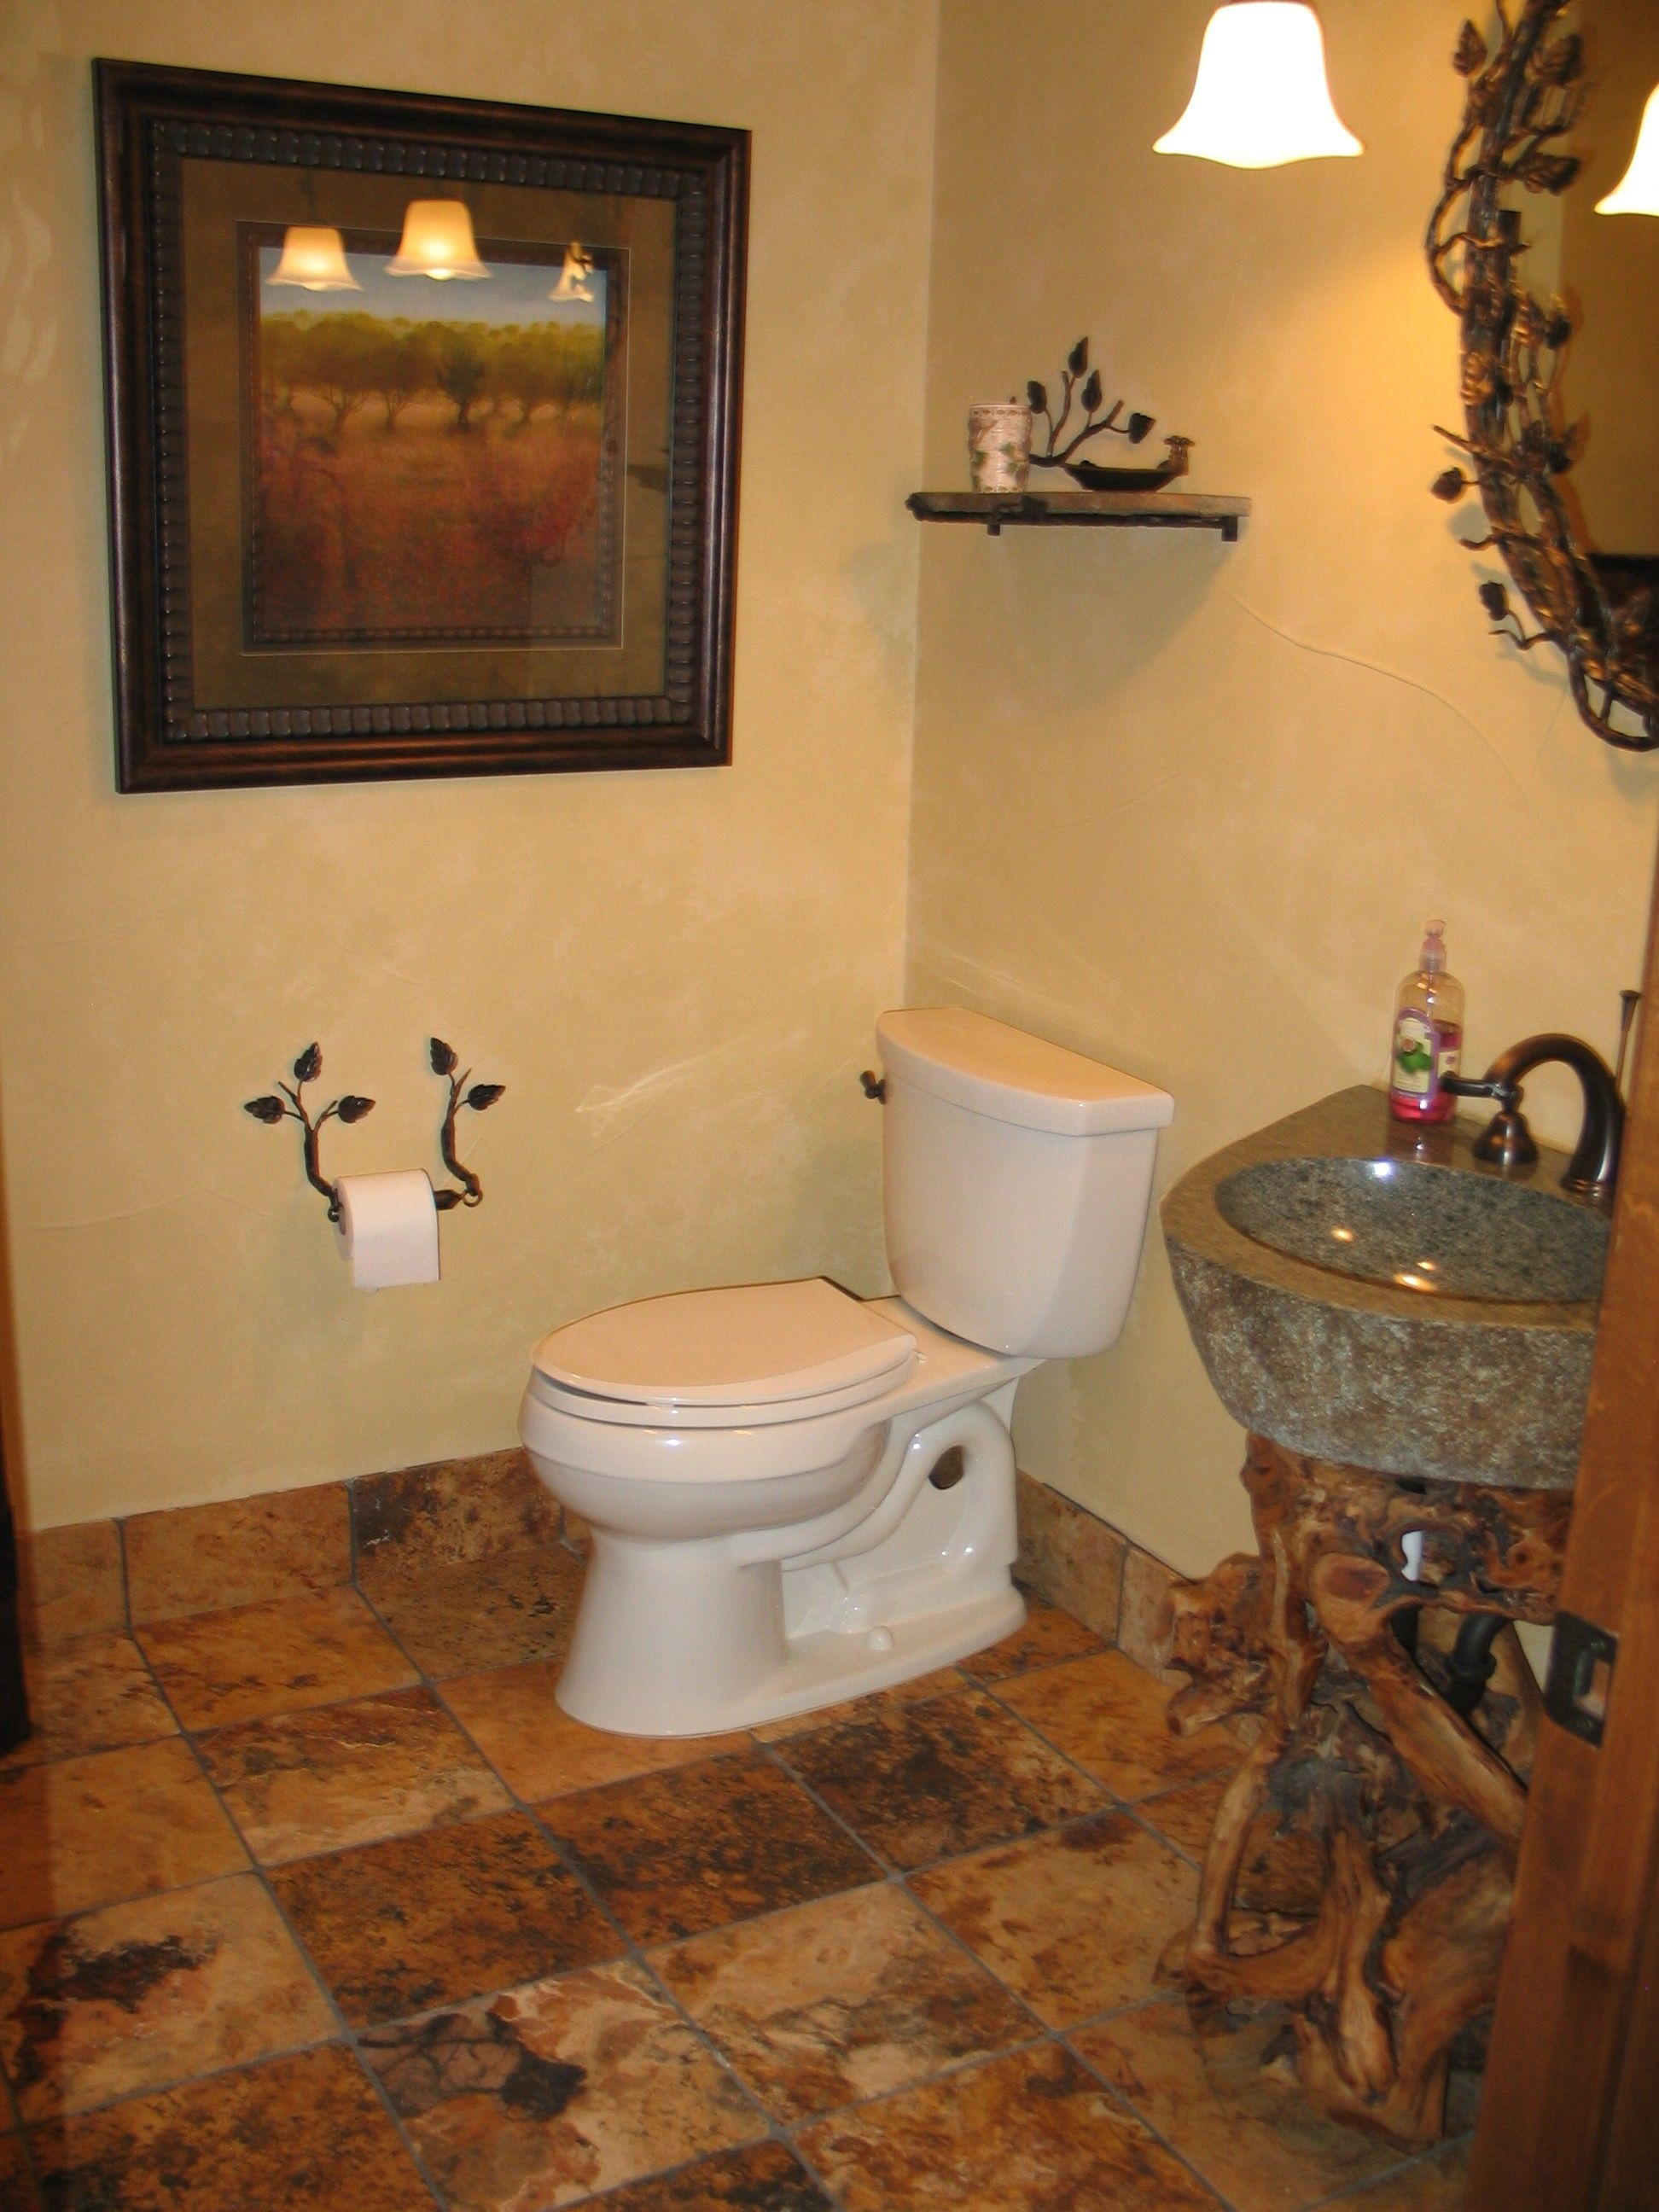 Cccc Bathroom Featuring Geode Floor Tiles And Tree Trunk With